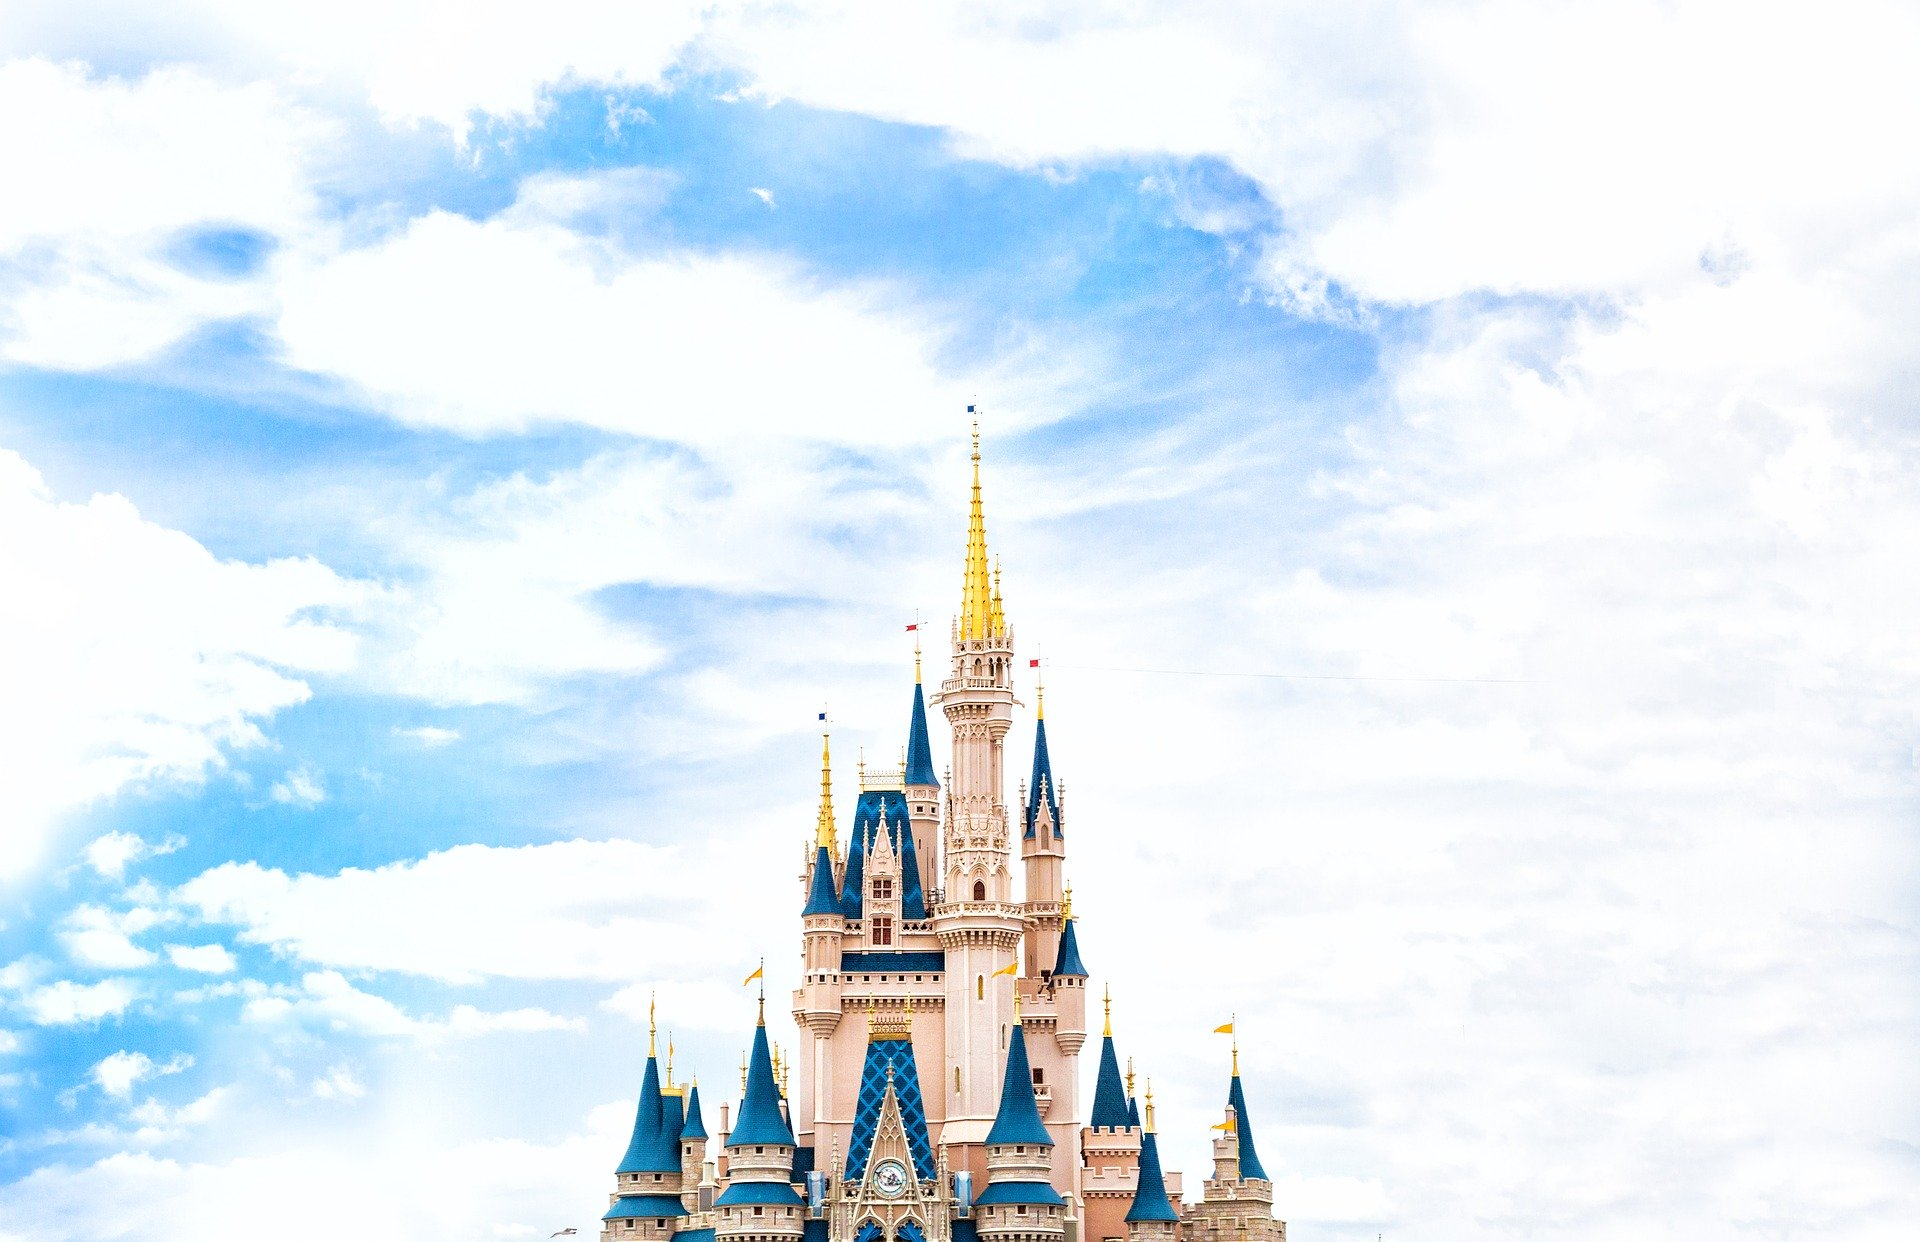 Disney Annual Passes: To Buy or Not to Buy, That is the Question